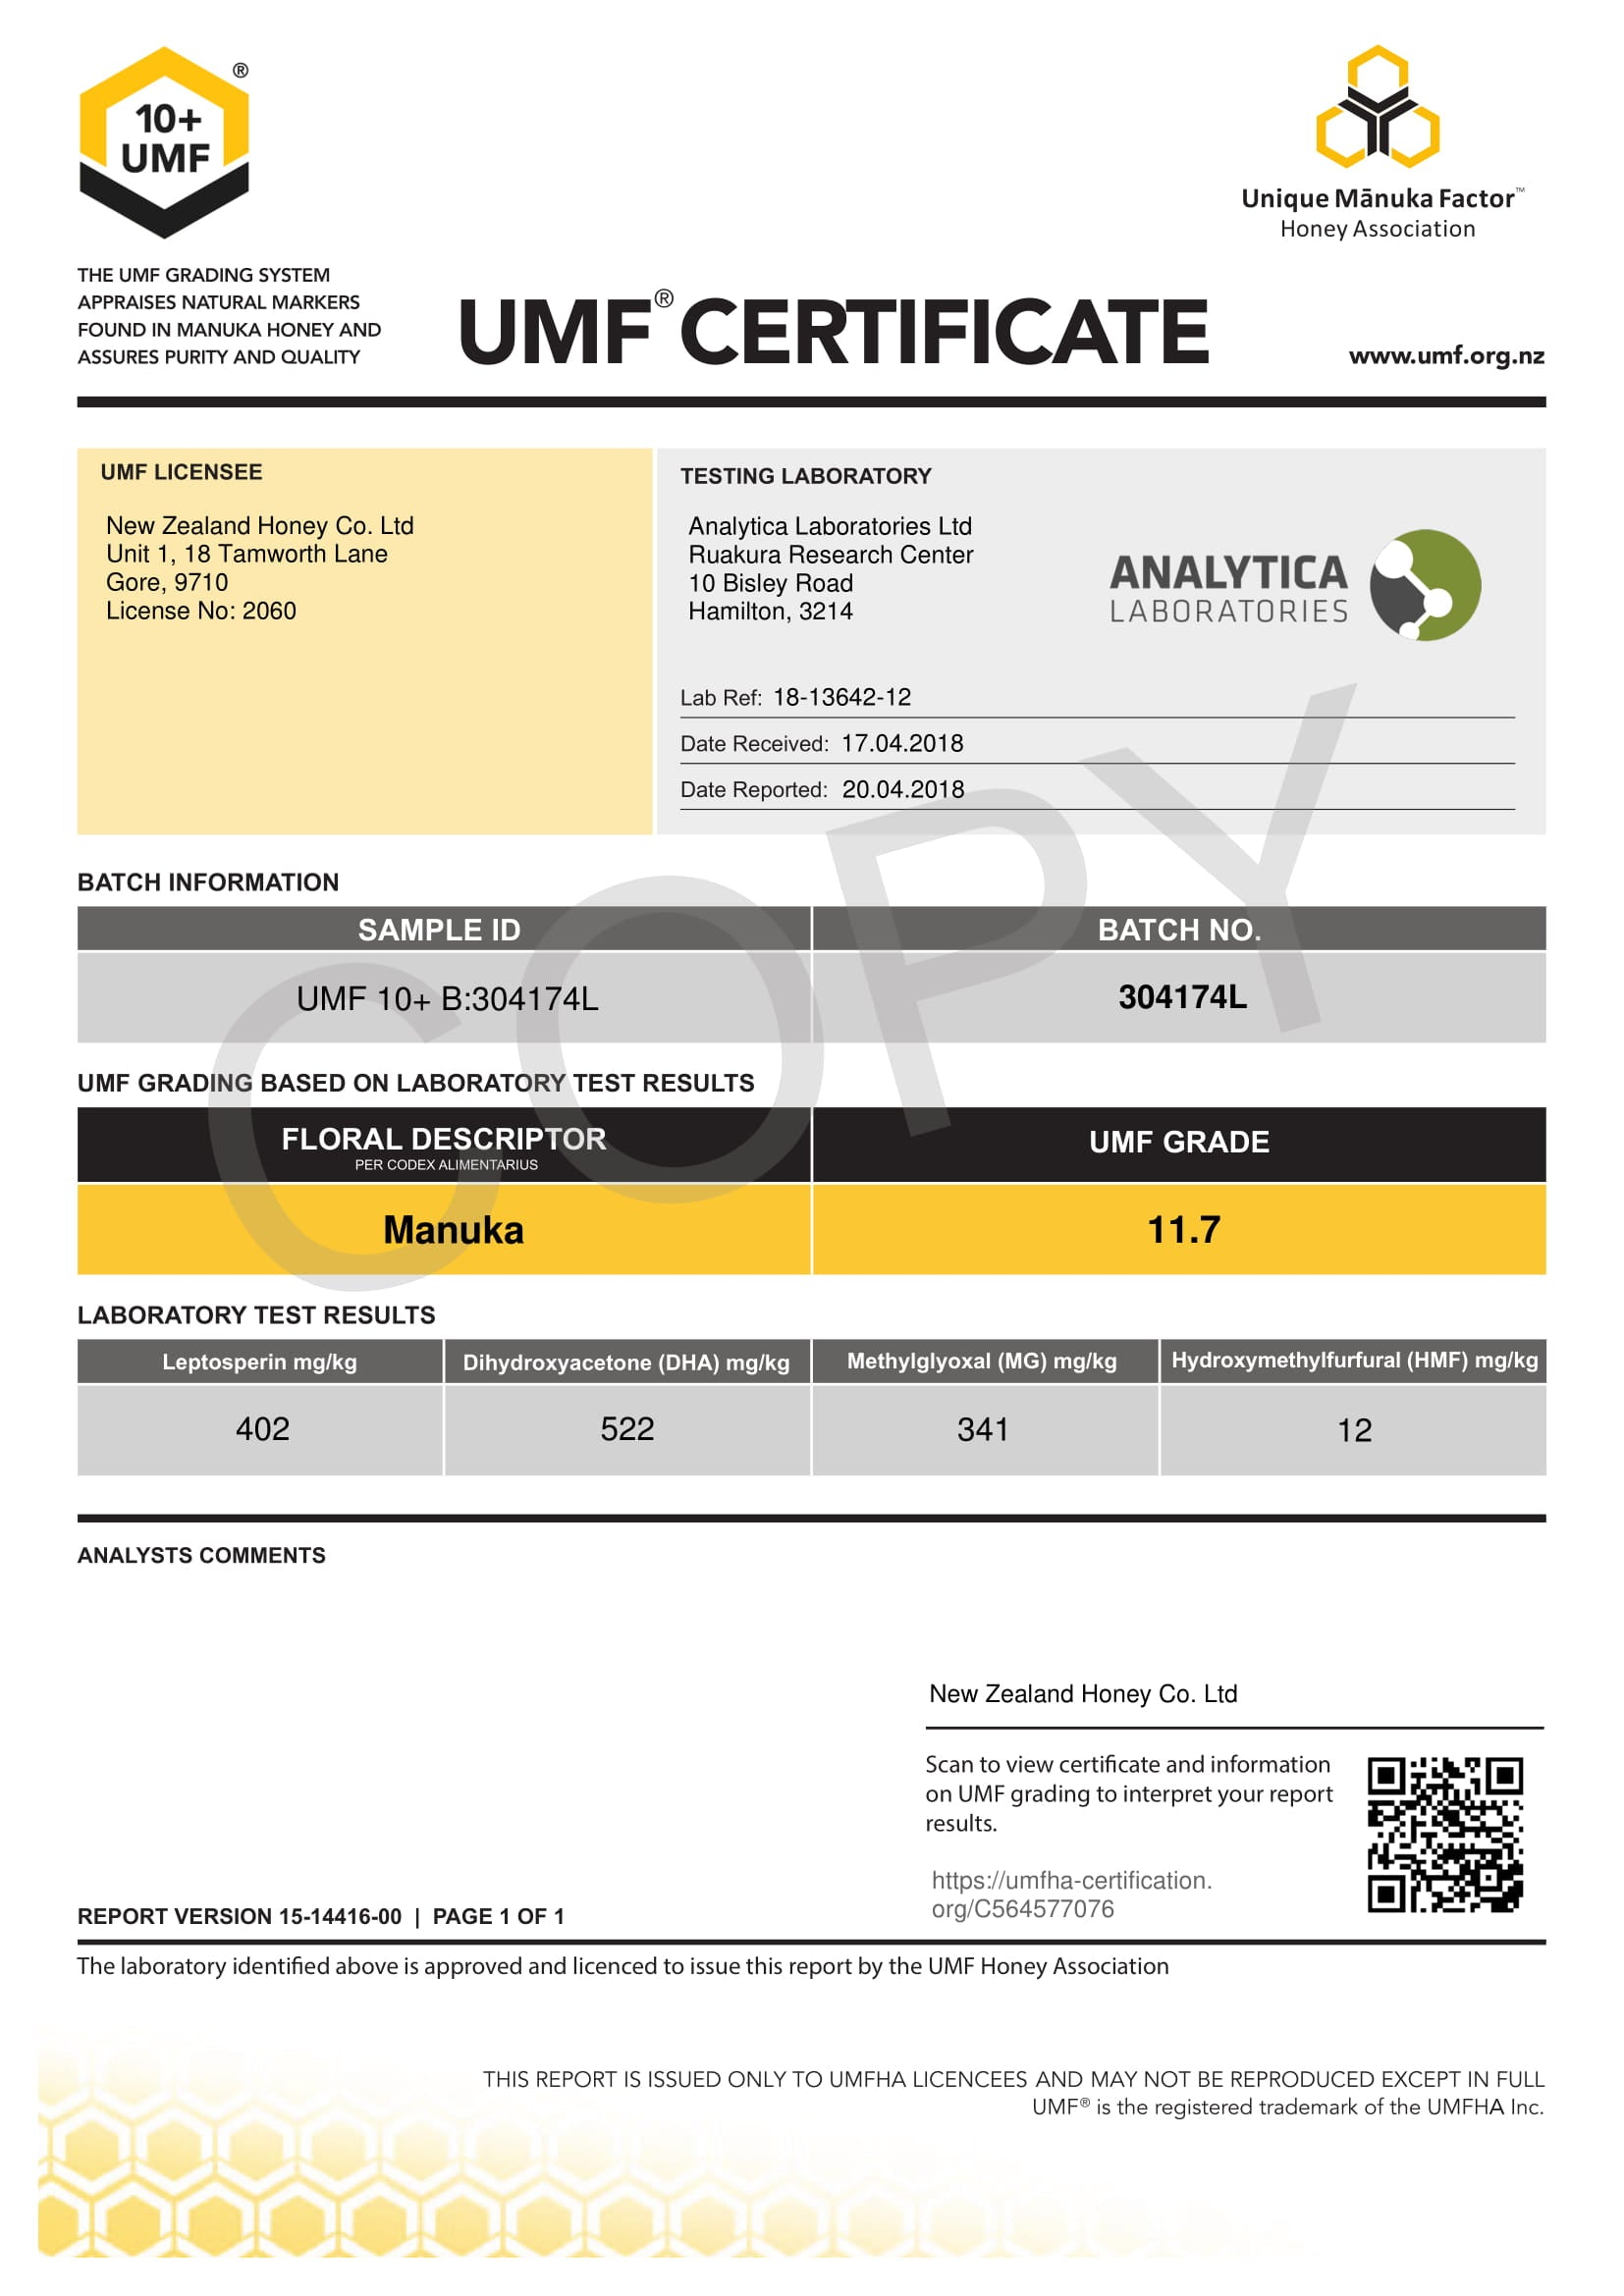 Manuka Honey UMF Certificate for LOT 304174L from New Zealand Honey Co.